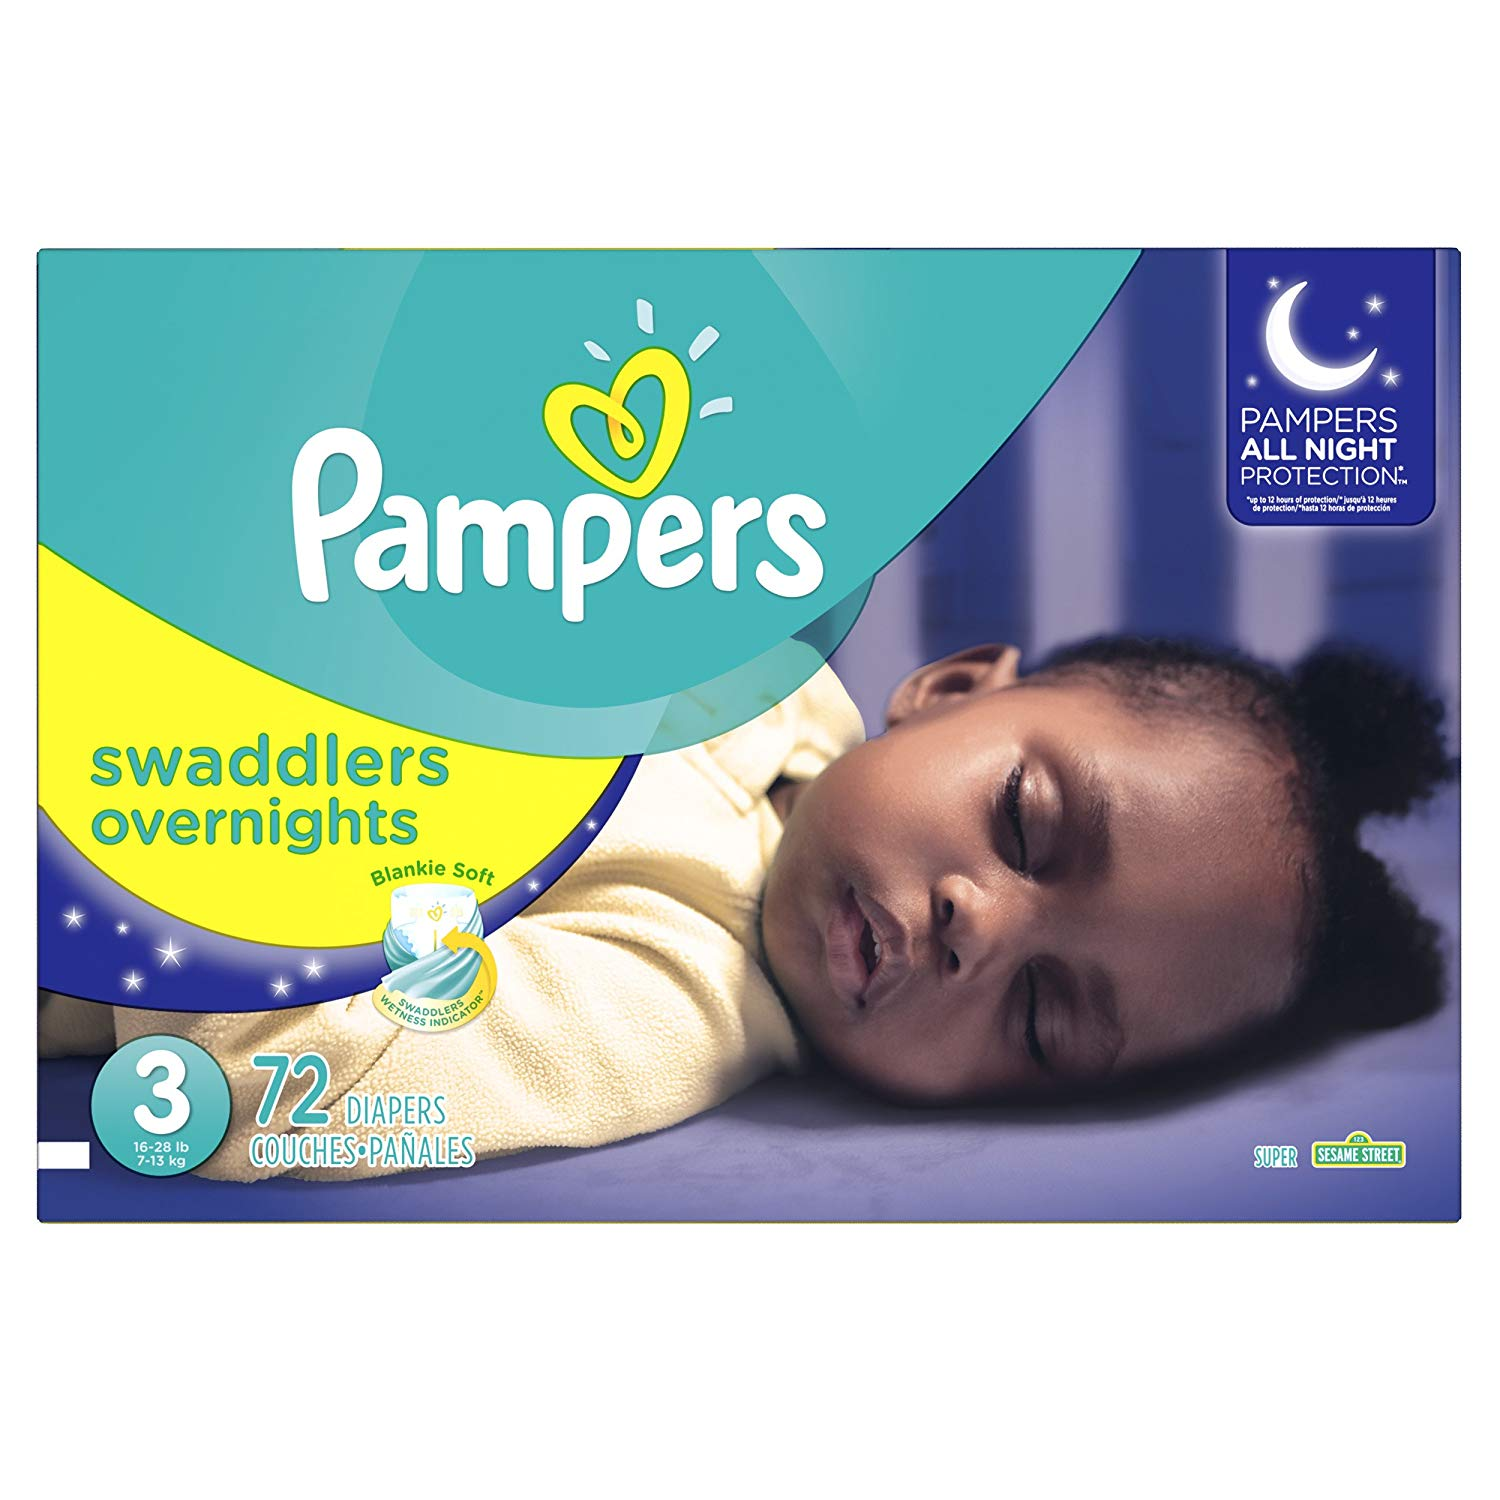 Pampers Swadlers